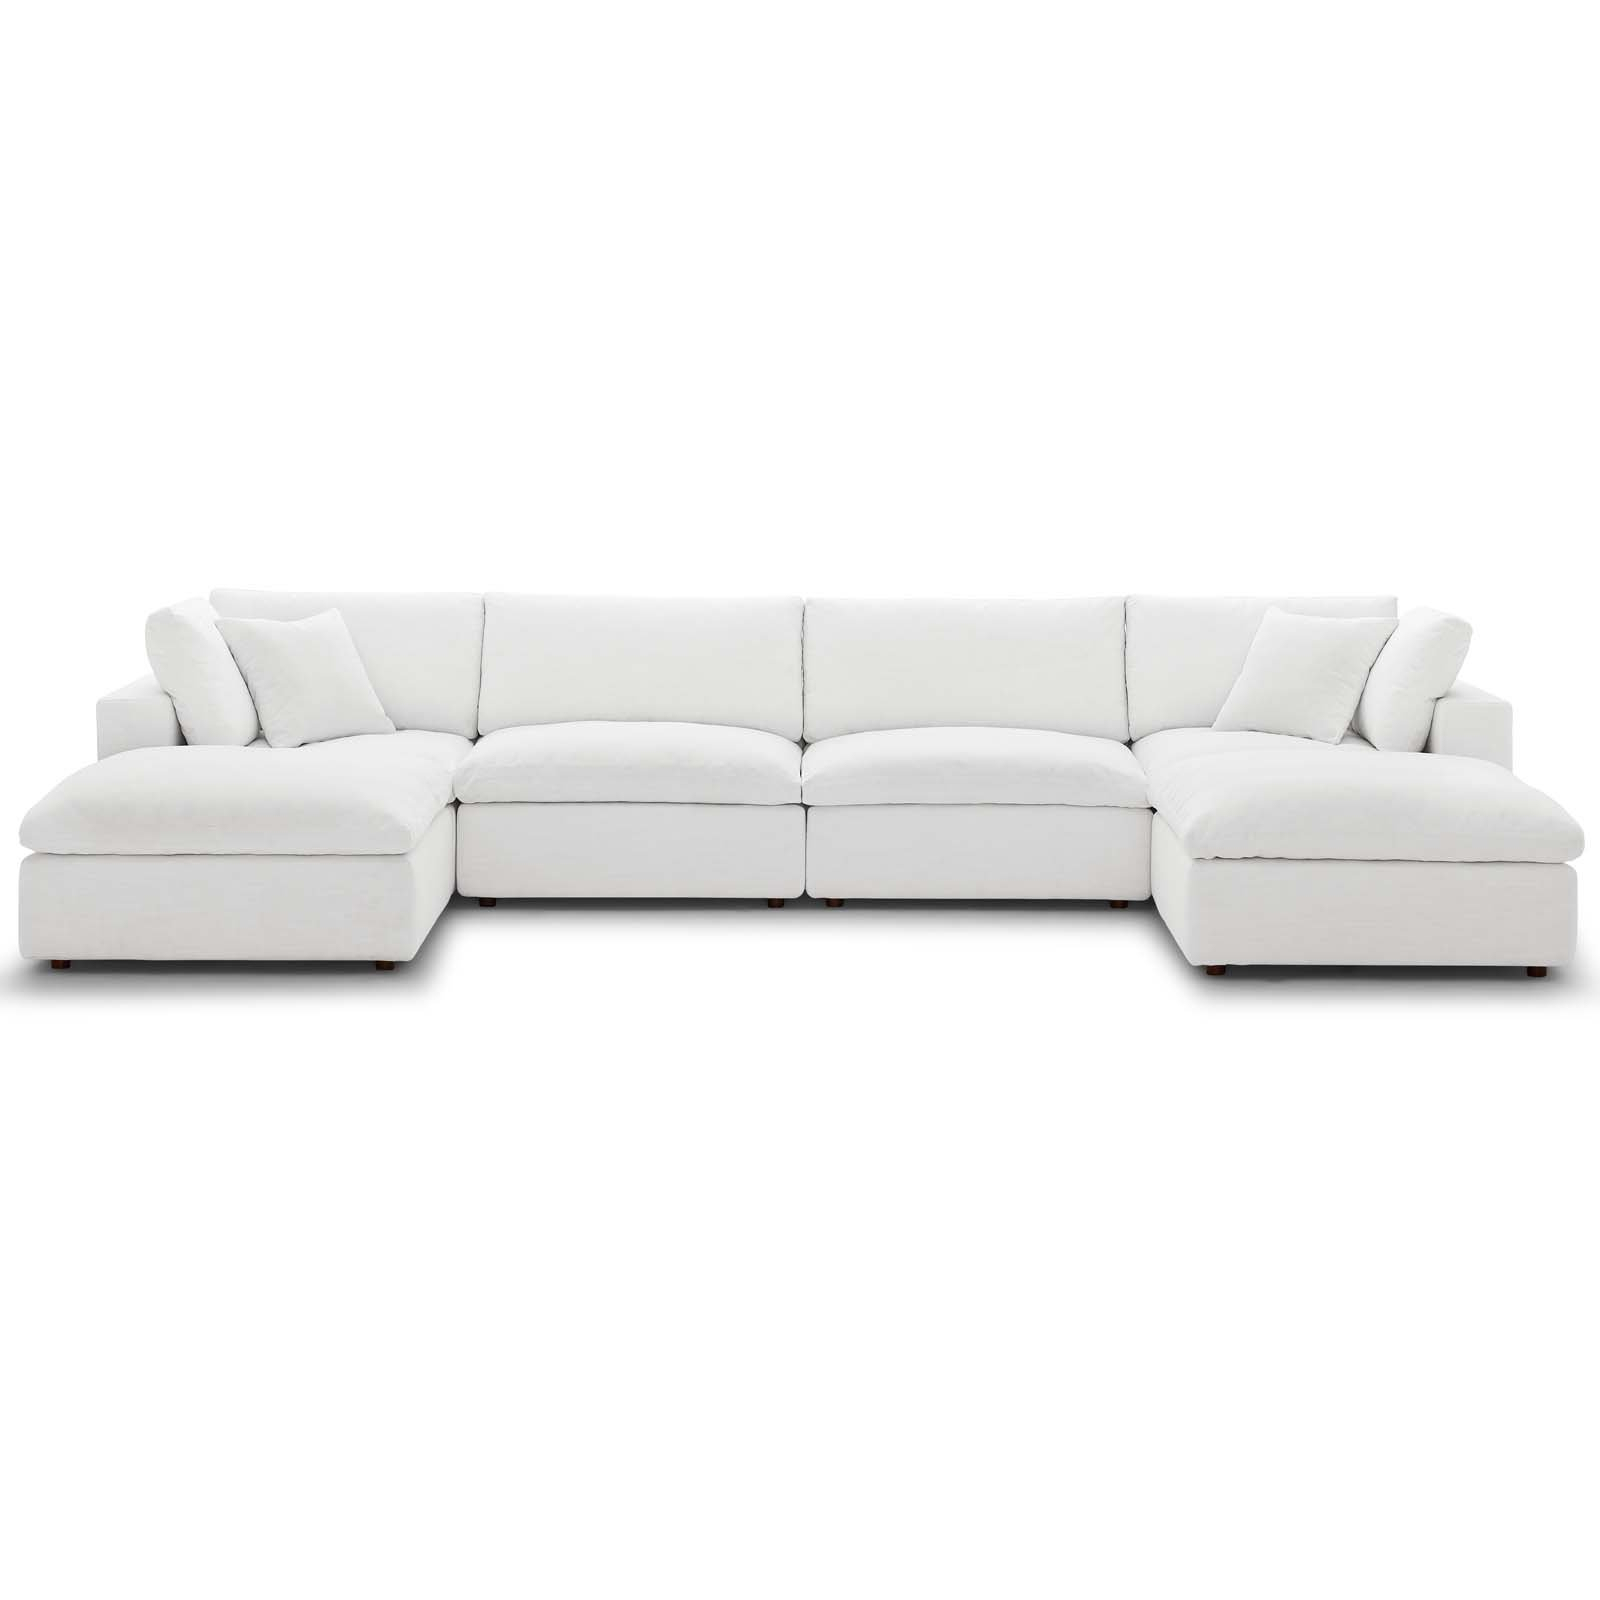 Commix Down Filled Overstuffed 6 Piece Sectional Sofa Set Inside Down Filled Sofas (View 5 of 15)